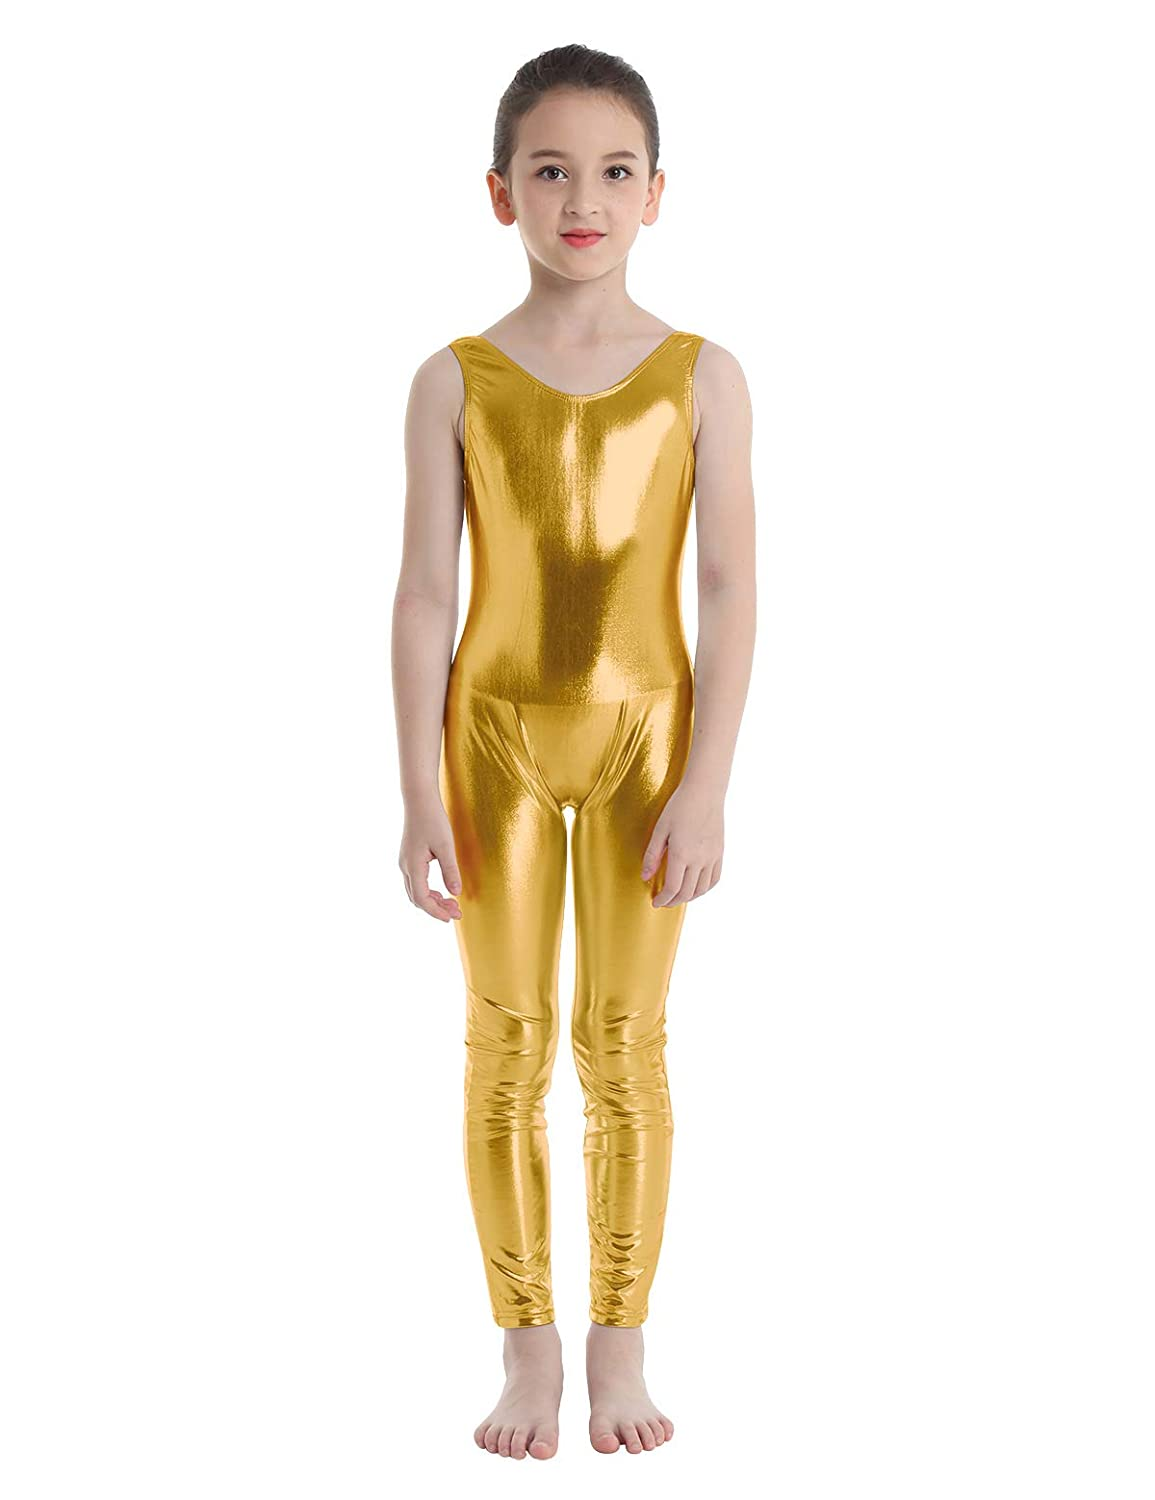 Amazon.com: moily Kids Girls Metallic Full Length Body ...